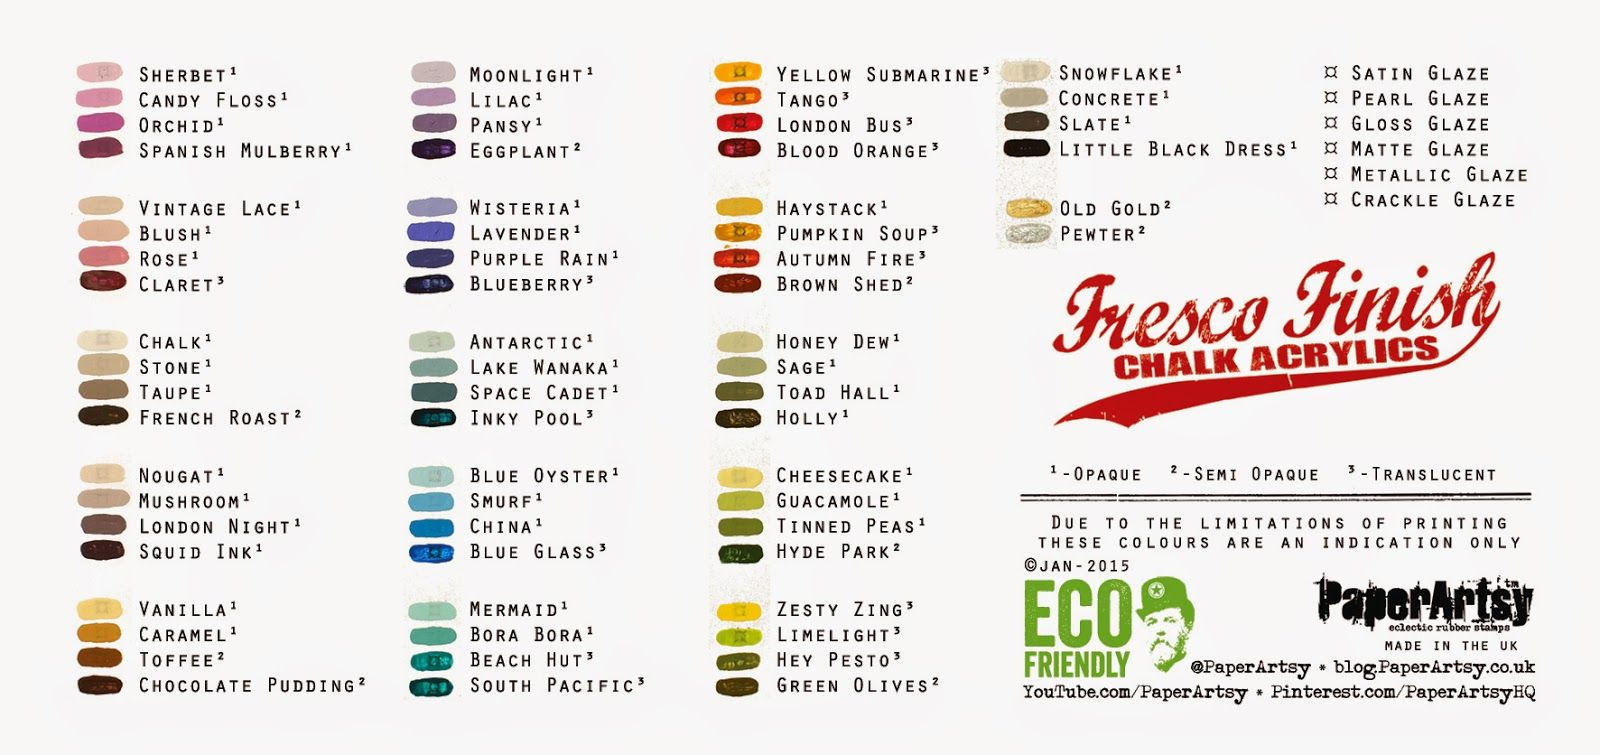 New 2015 Paperartsy Products Paint Paint Samples Paper Artsy Paint Charts